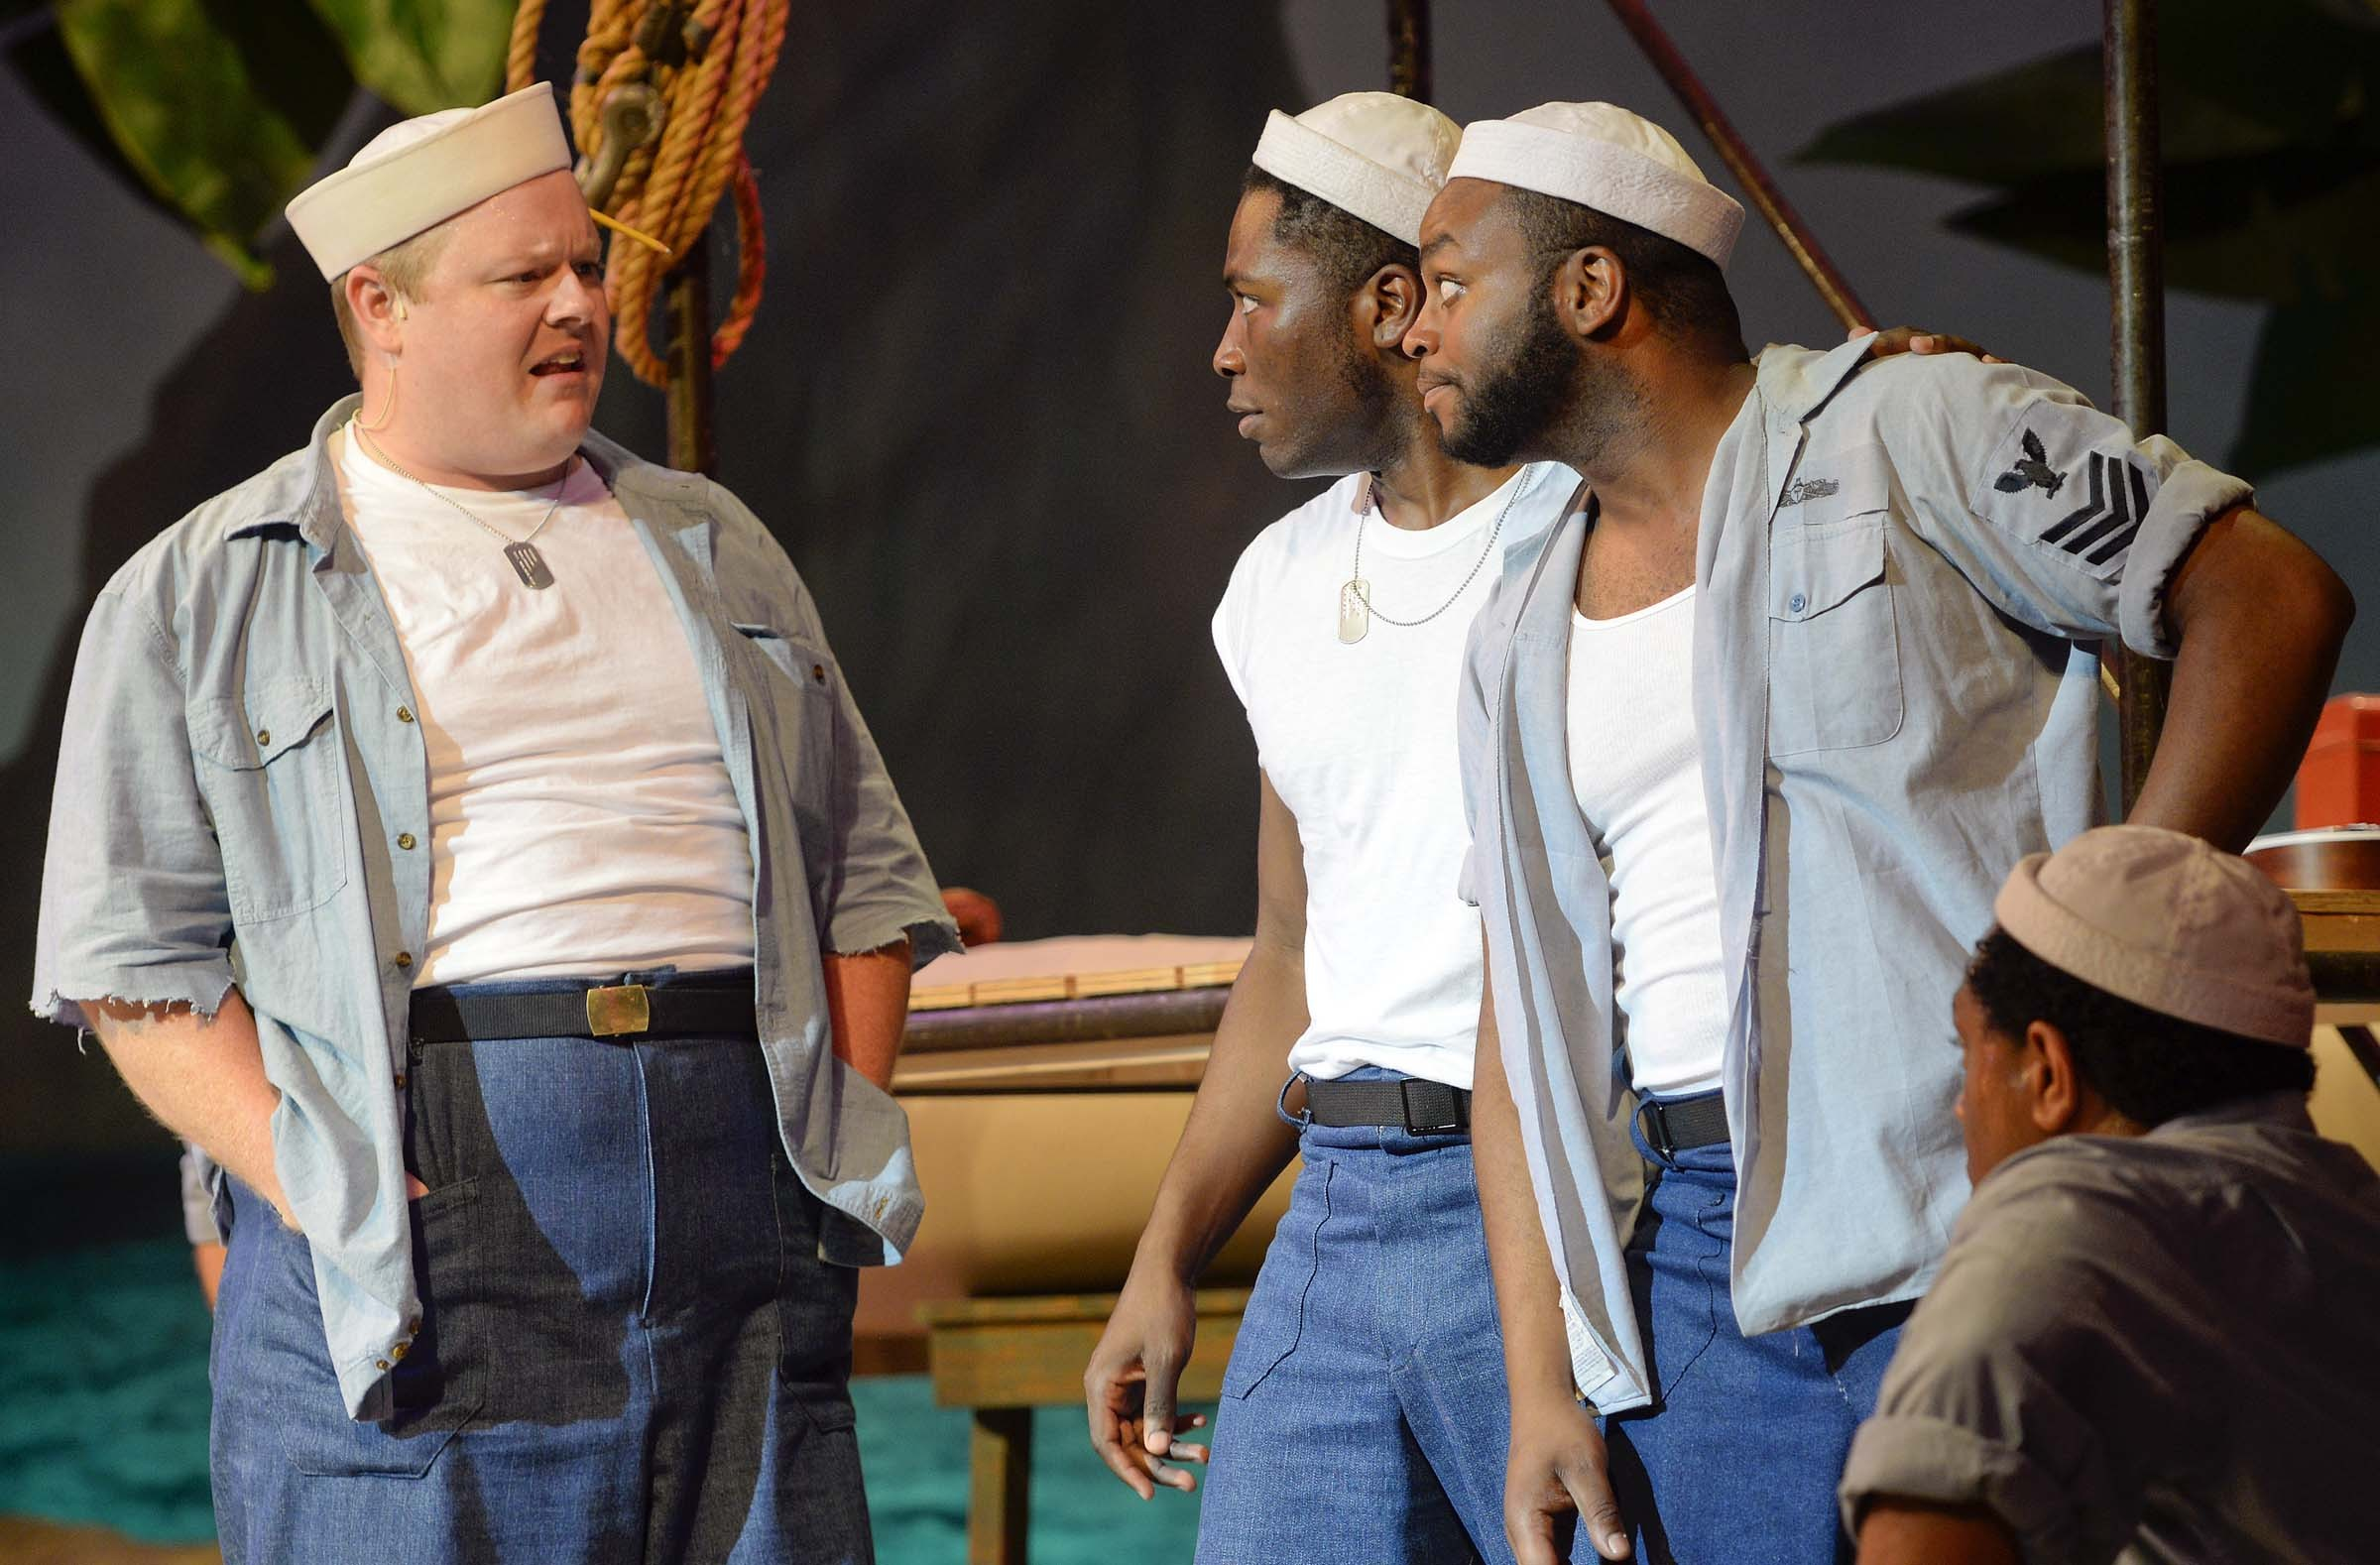 Paul Major, who plays Stewpot, banters with fellow Seabees, played by Jamari Johnson Williams and Durron Marquis Tyre. - ASH DANIEL